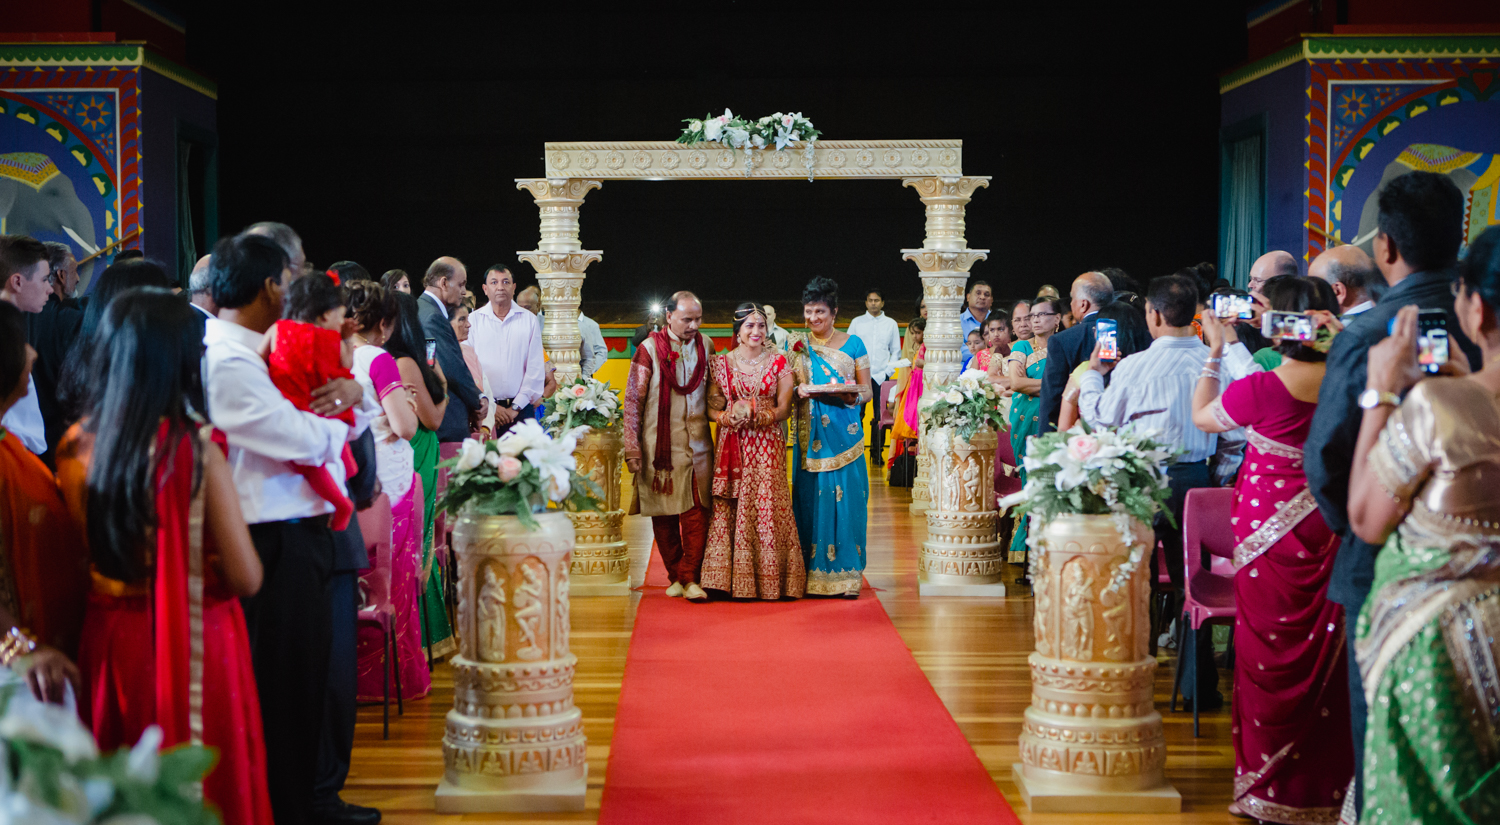 A traditional Indian Bride arriving at her Hindu wedding ceremony at the Auckland Indian Association Hall in Kilbirnie, Wellington. Photographed by Mala Photography, an Auckland based wedding photographer that has a lot of experience photographing Indian weddings in Auckland, Wellington, Hamilton, Queenstown and New Zealand wide.